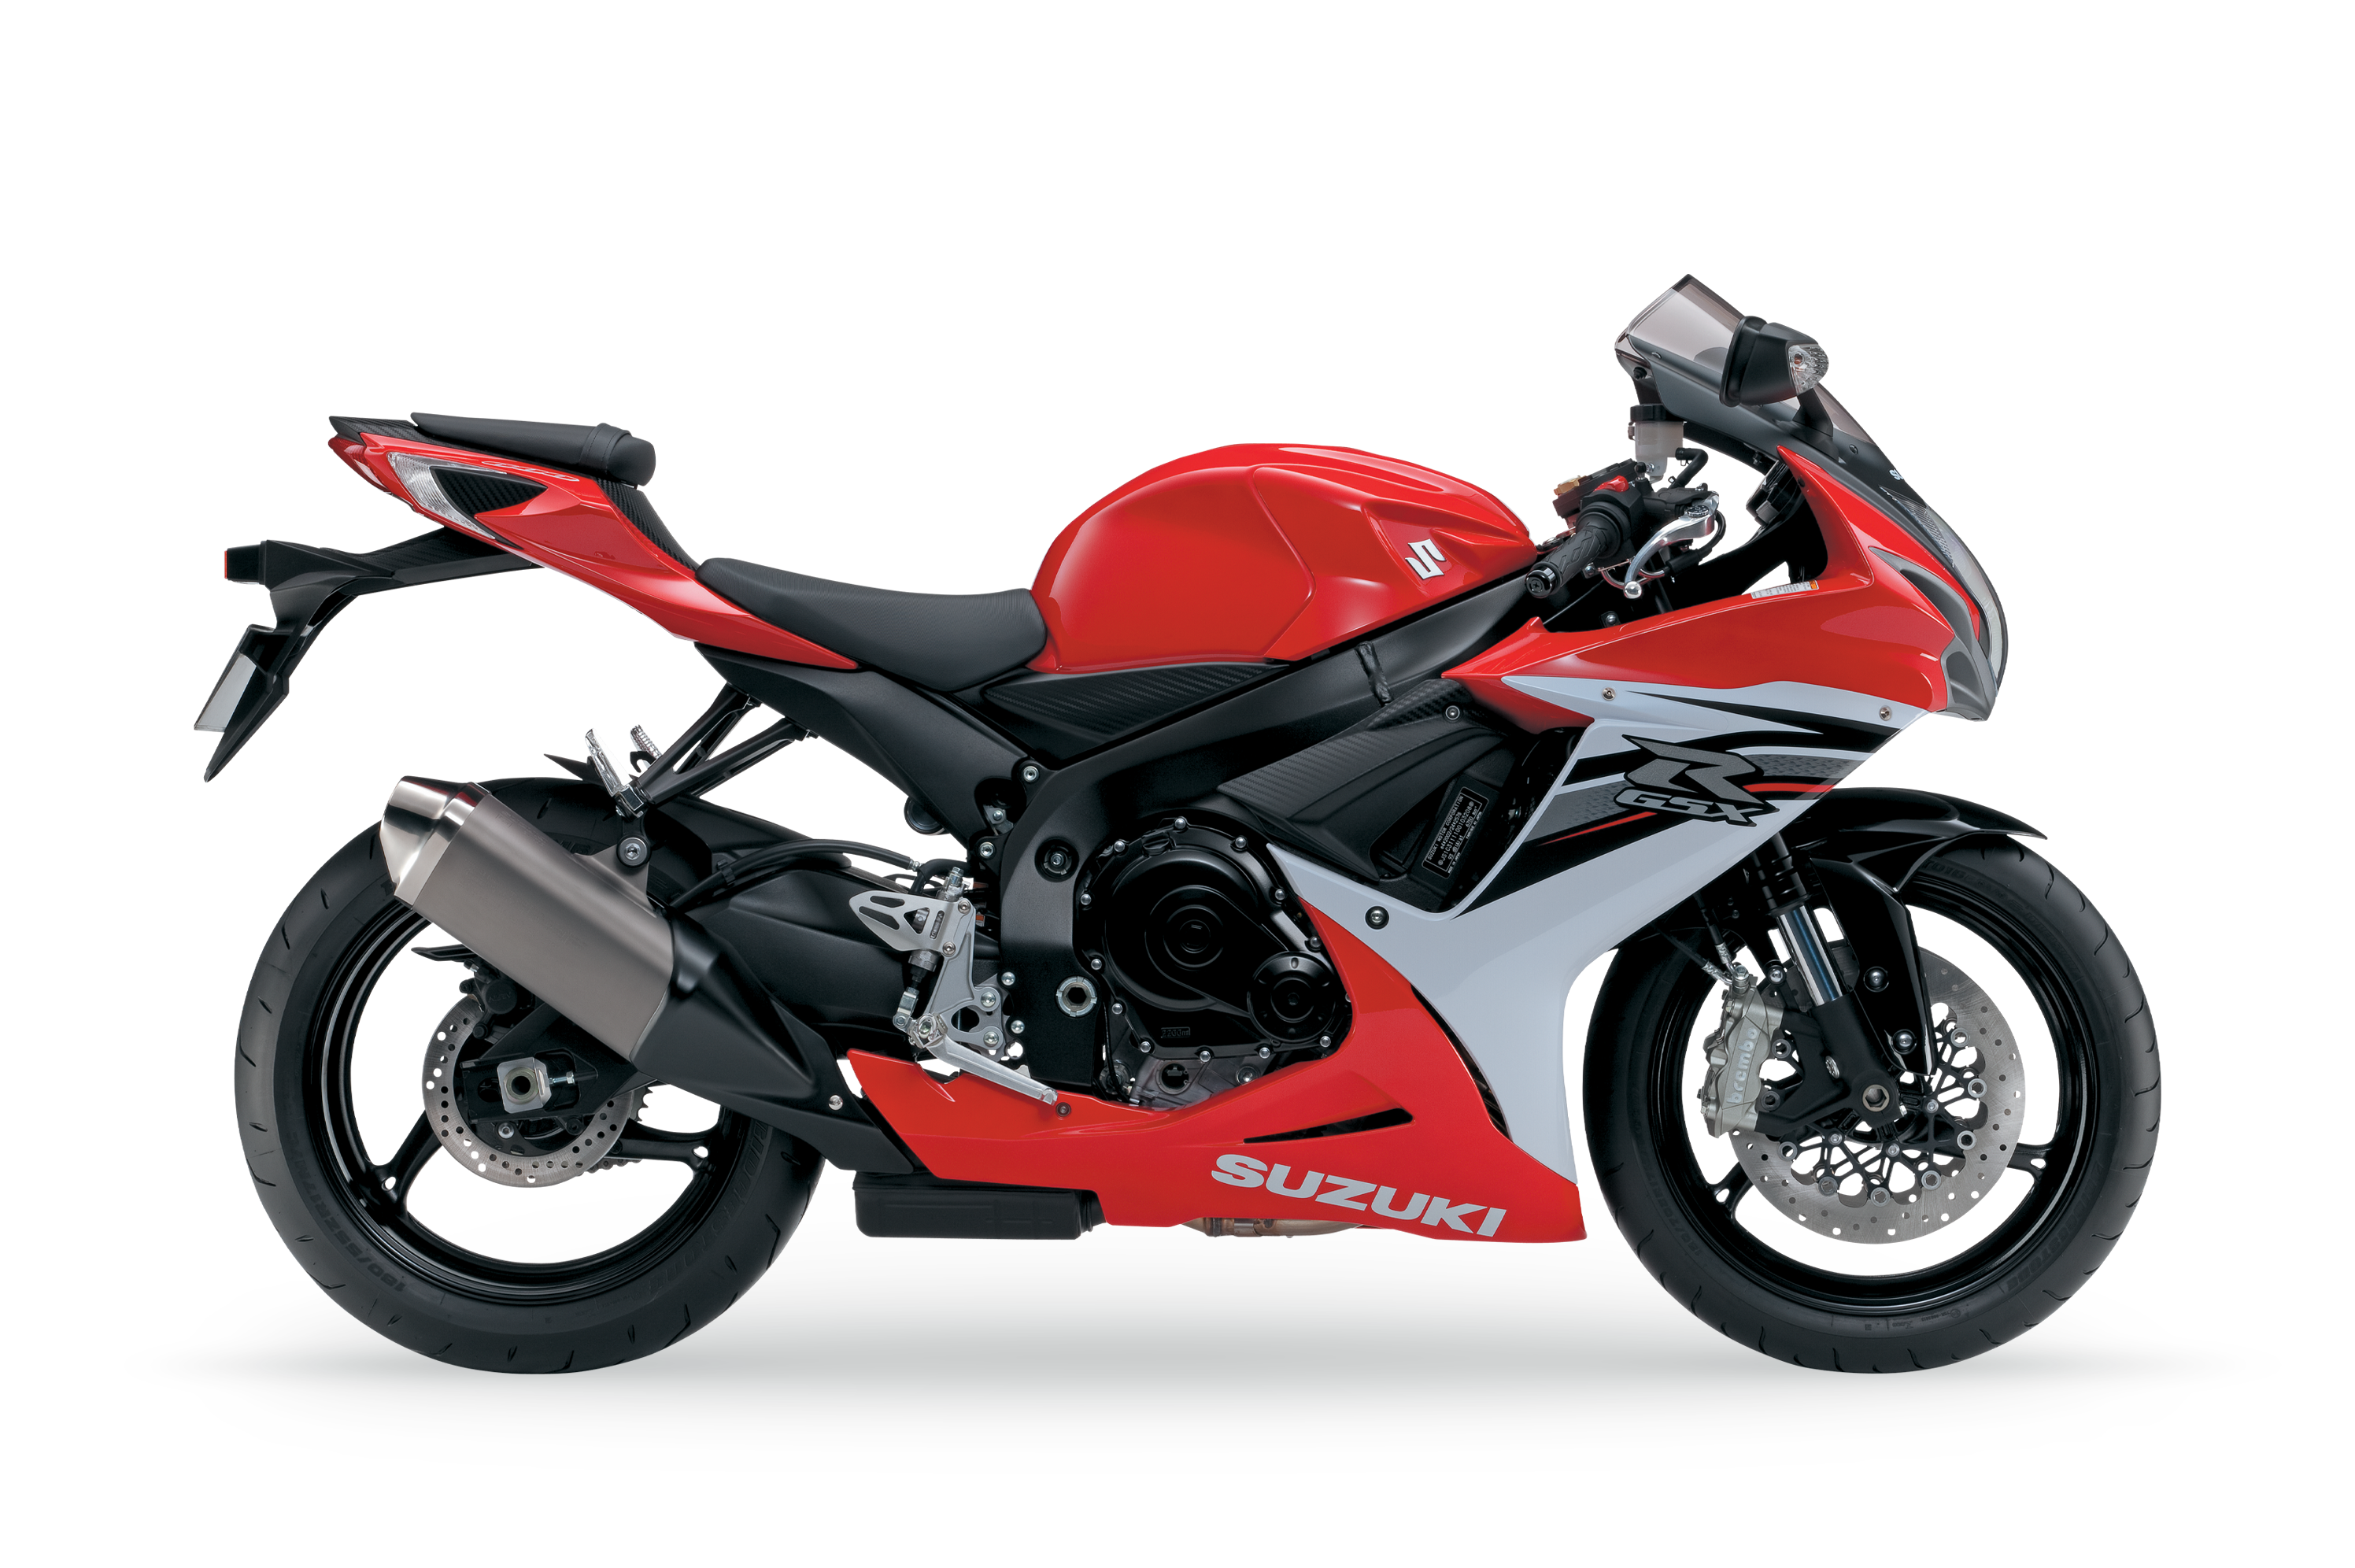 Motorcycle Png image #20320 - Motorcycle PNG